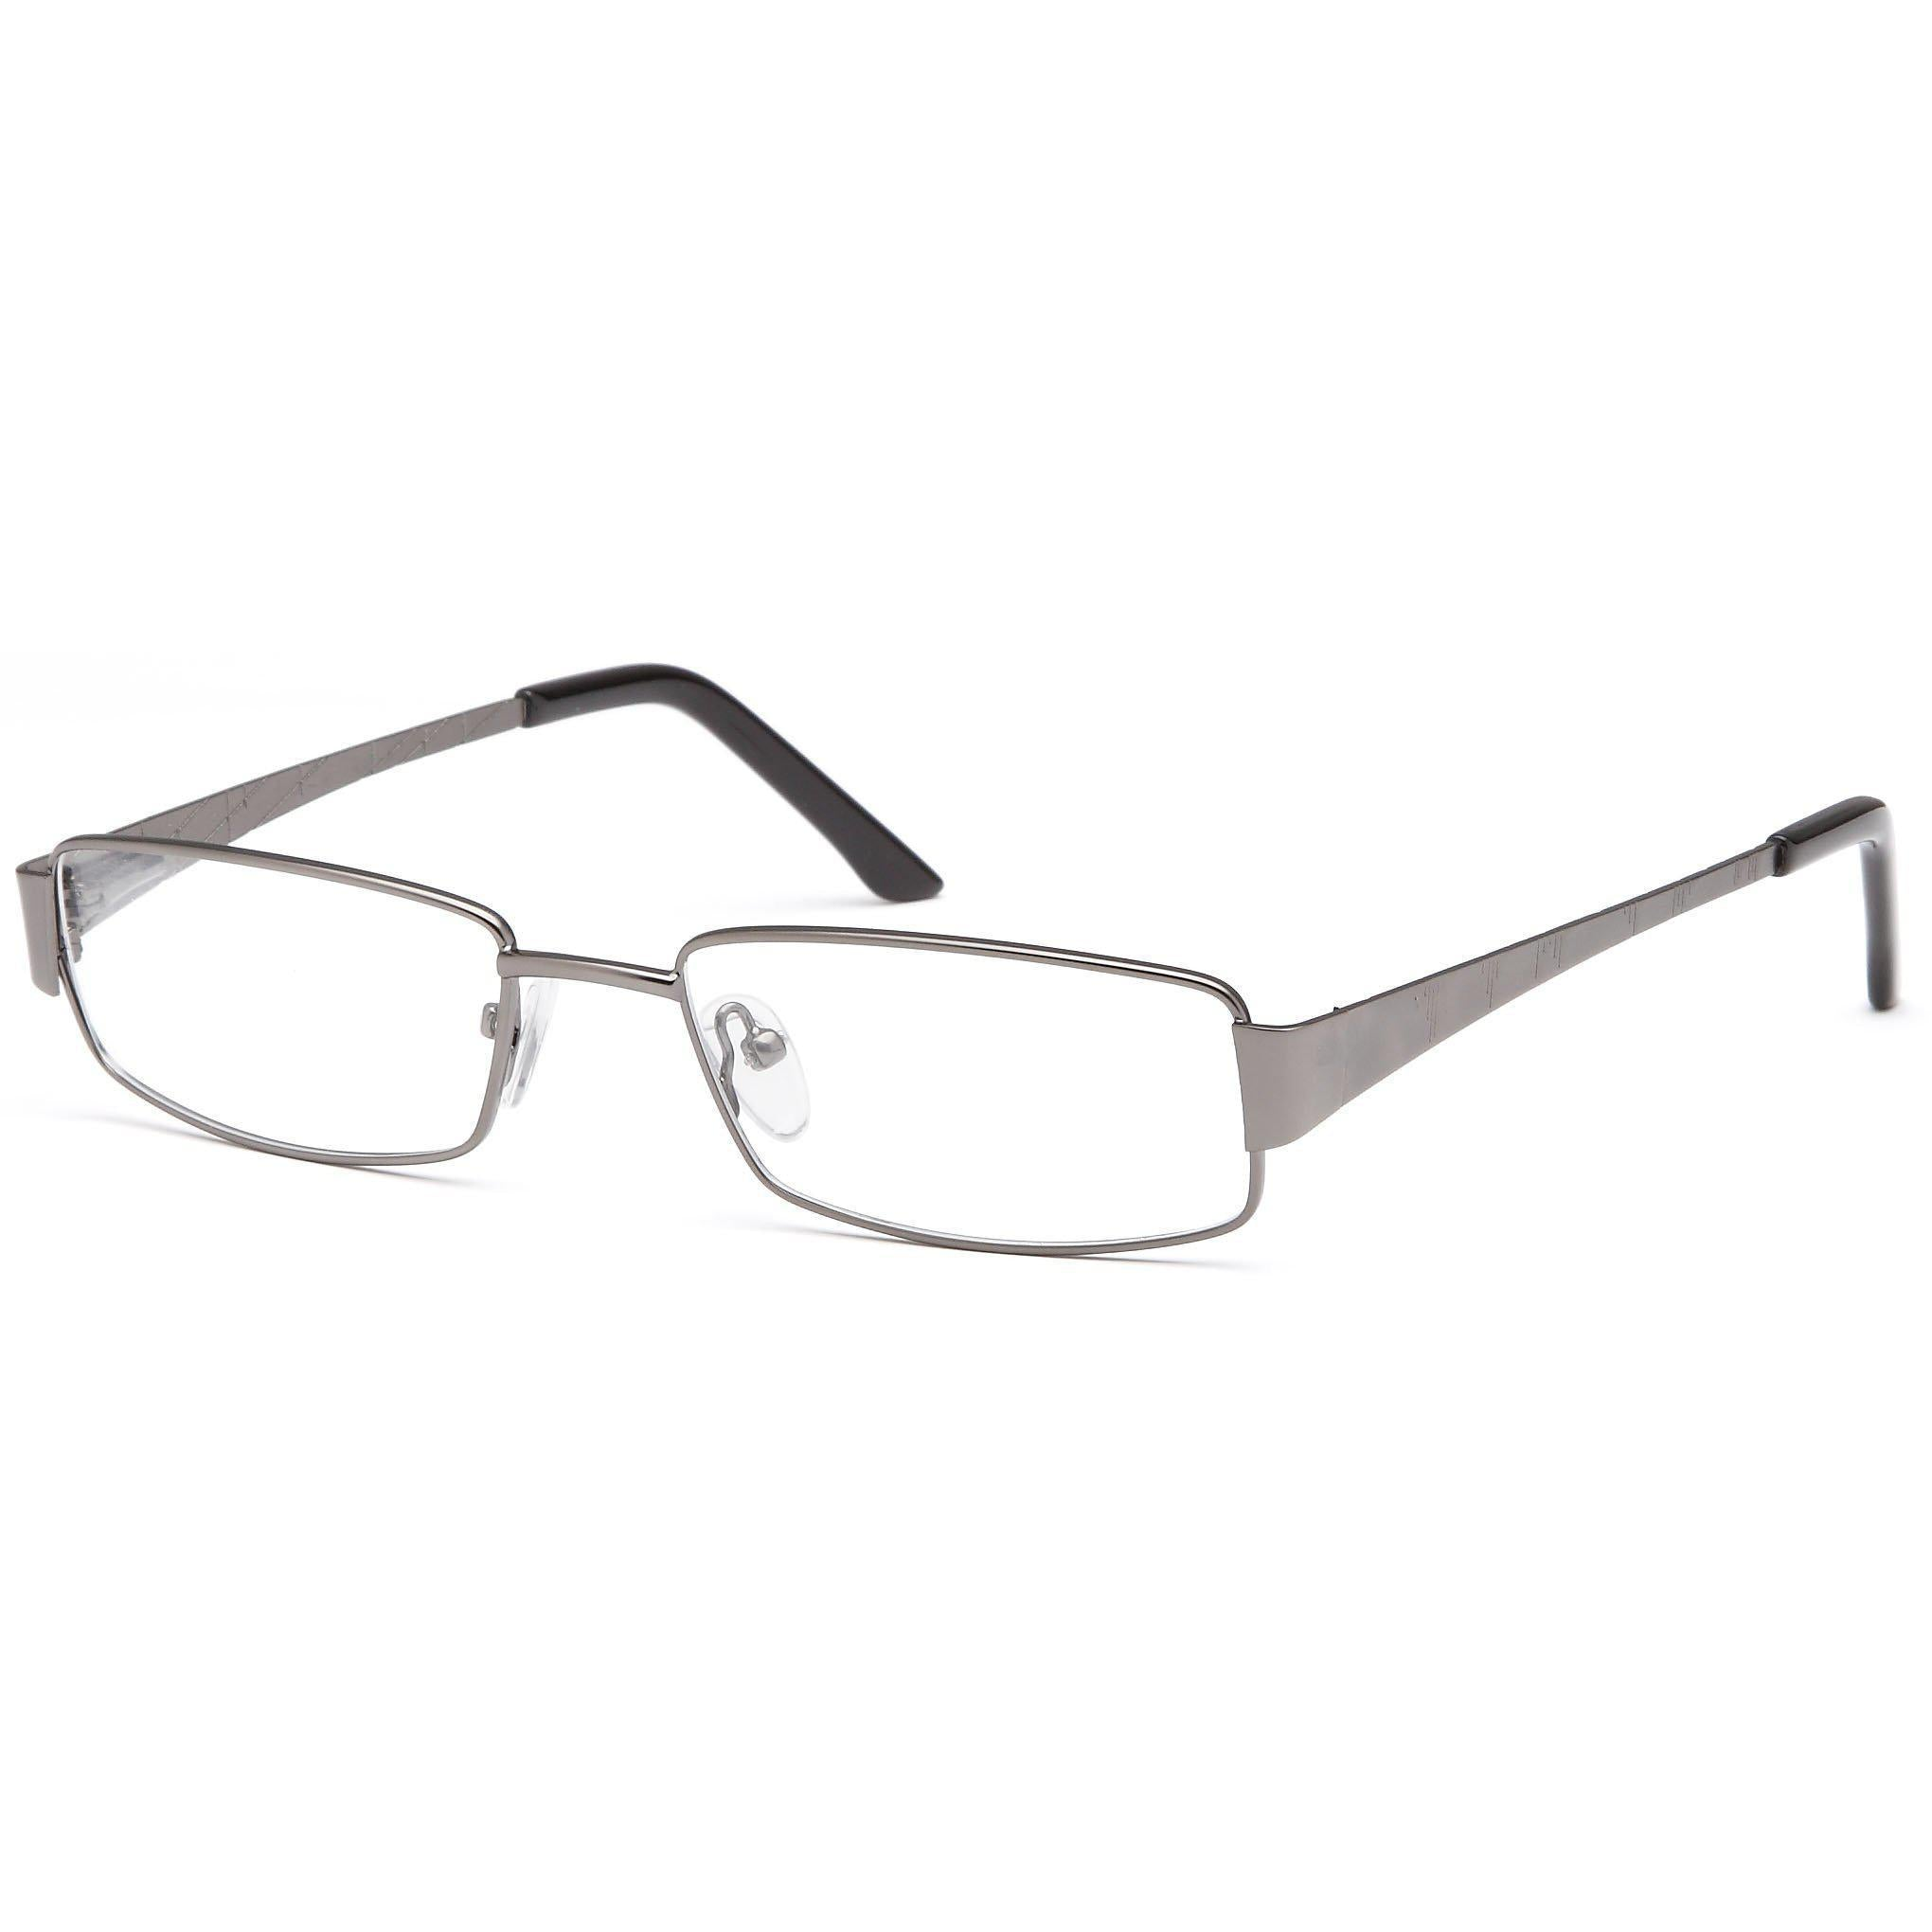 Appletree Prescription Glasses PT 88 Eyeglasses Frame